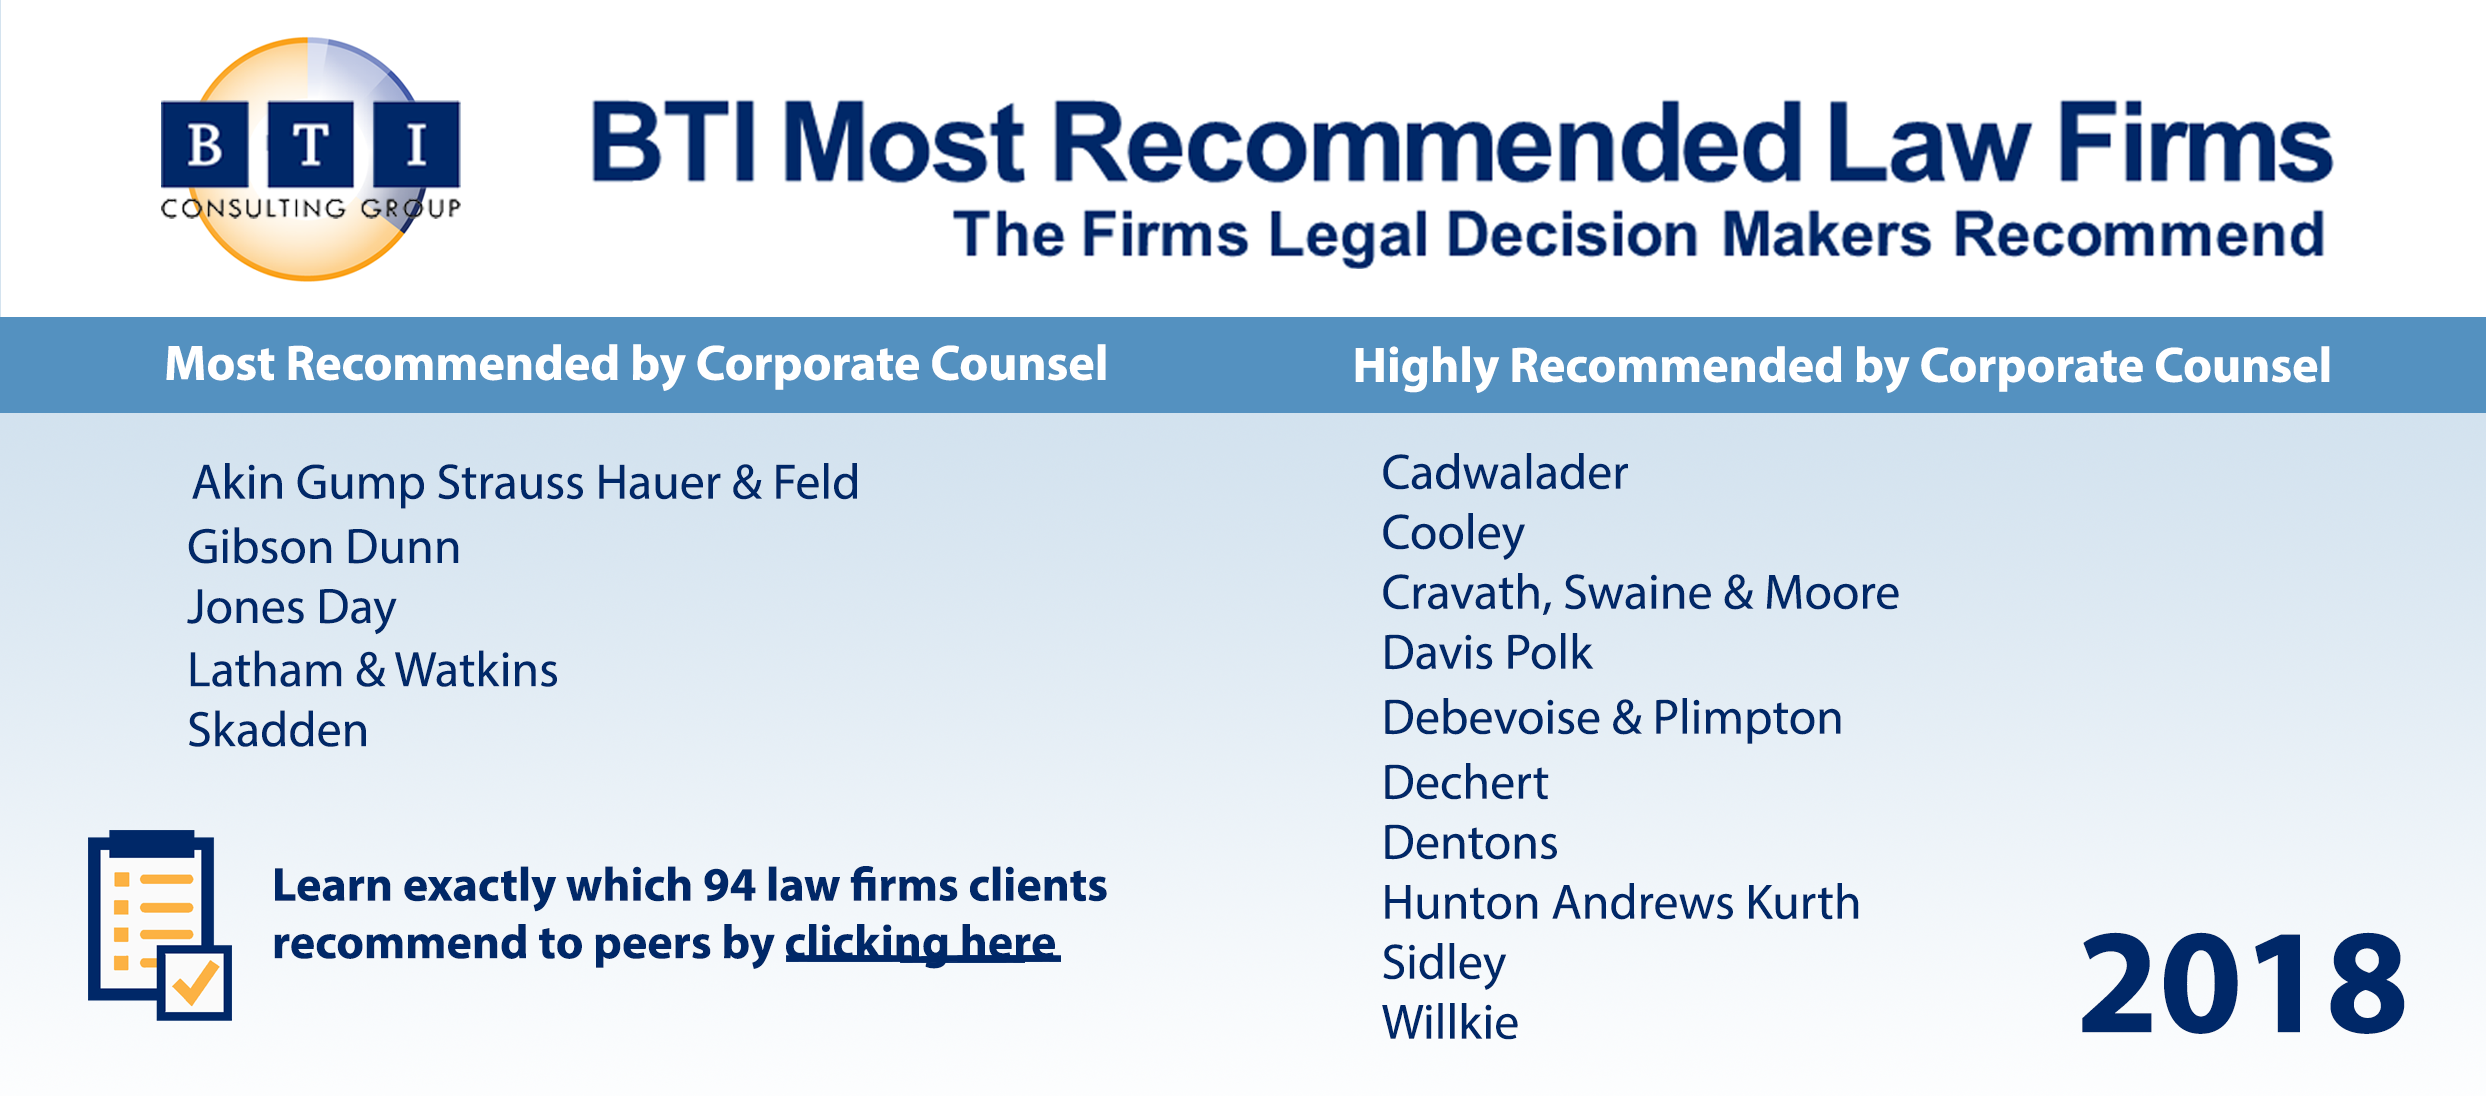 Most Recommended Firms 2018 Blog Image_Columns_Icon at Bottom_Date1.png